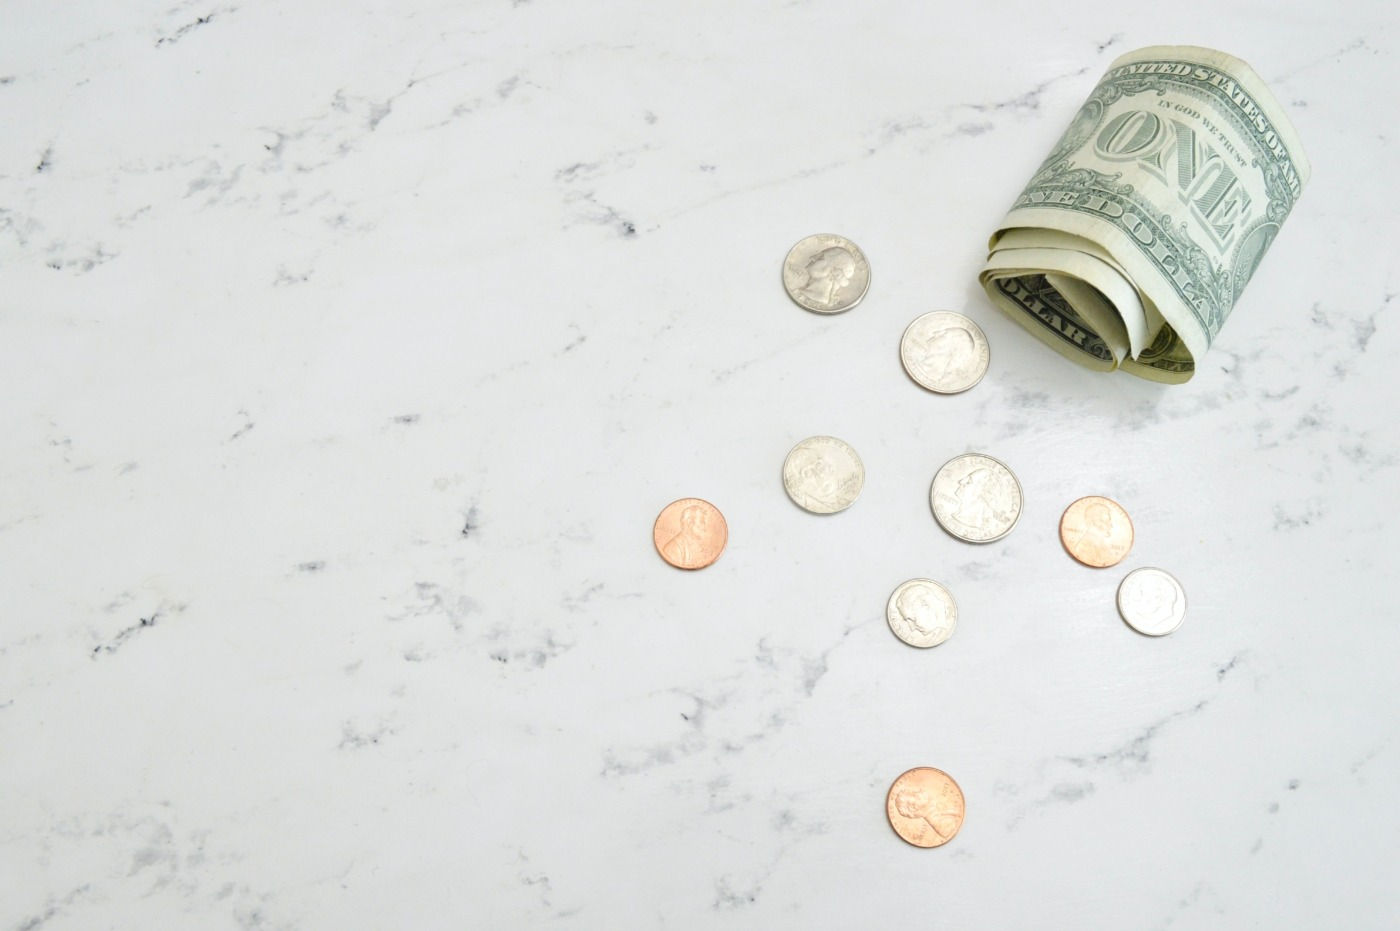 Money on marble / Image: Unsplash